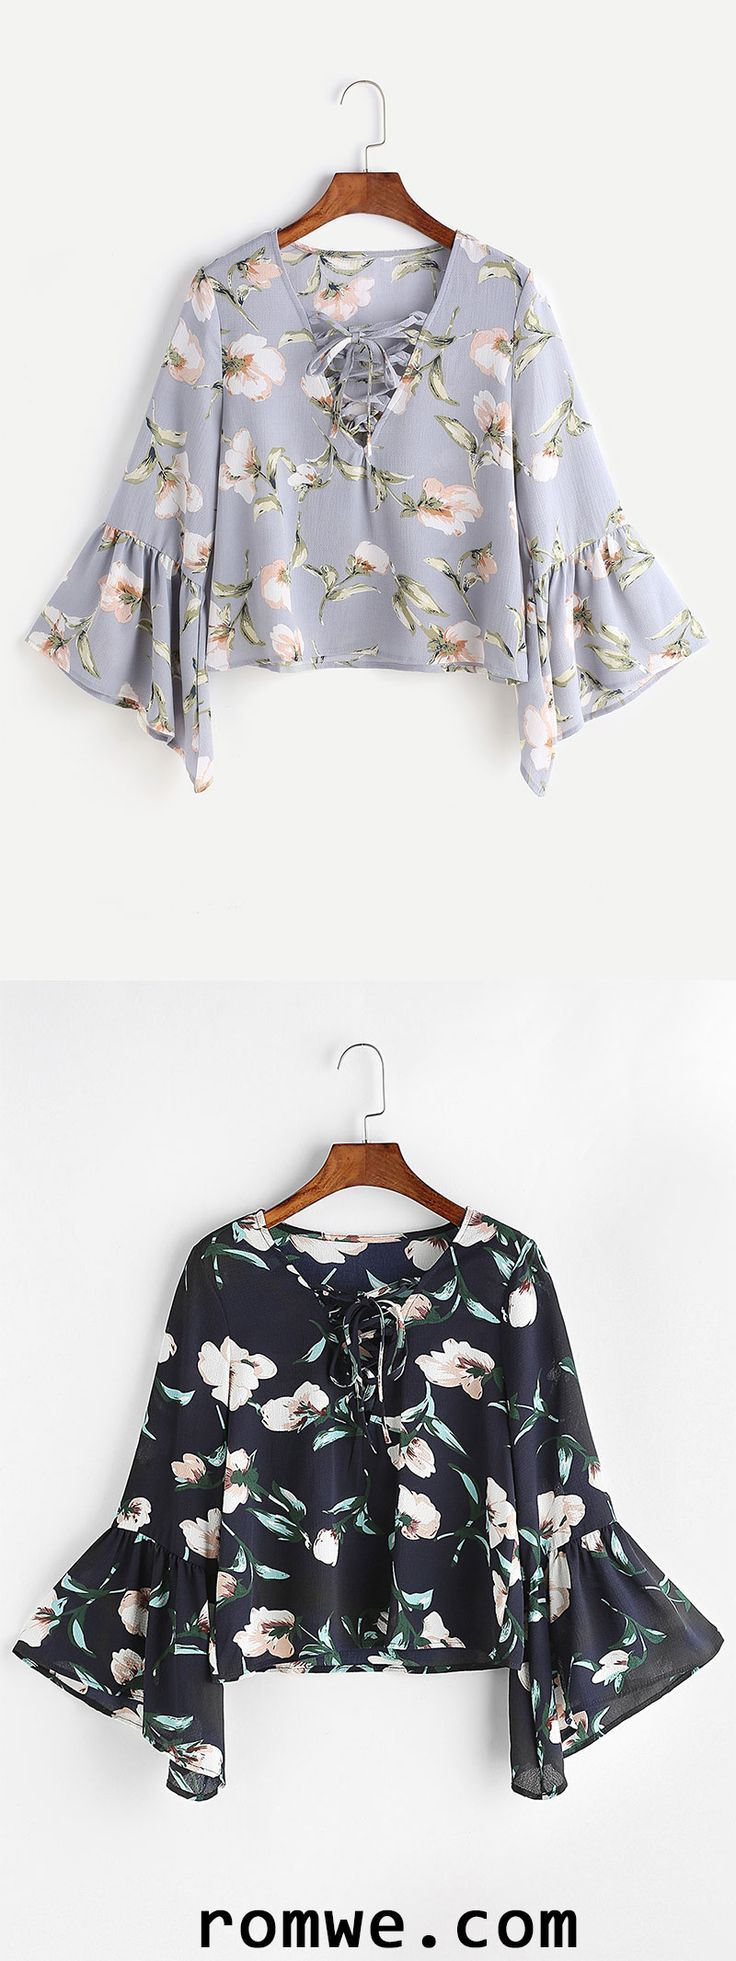 I have a blouse like the light grey, and love it.  Feminine and fits nice. https://bellanblue.com